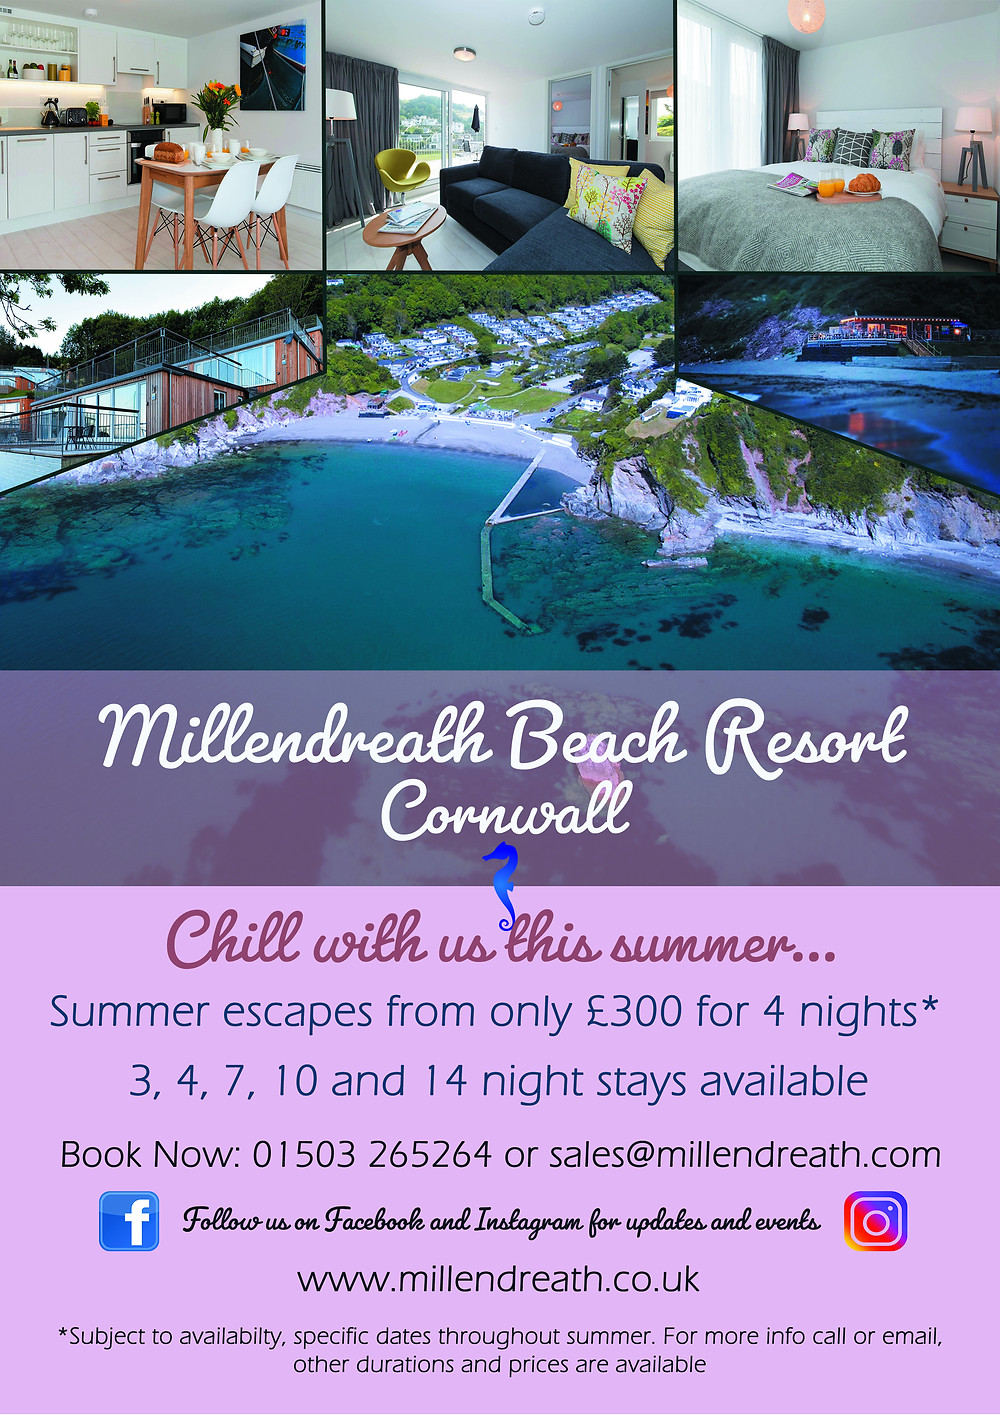 Holidays at Millendreath Beach Resort this summer from only £309 for a short break